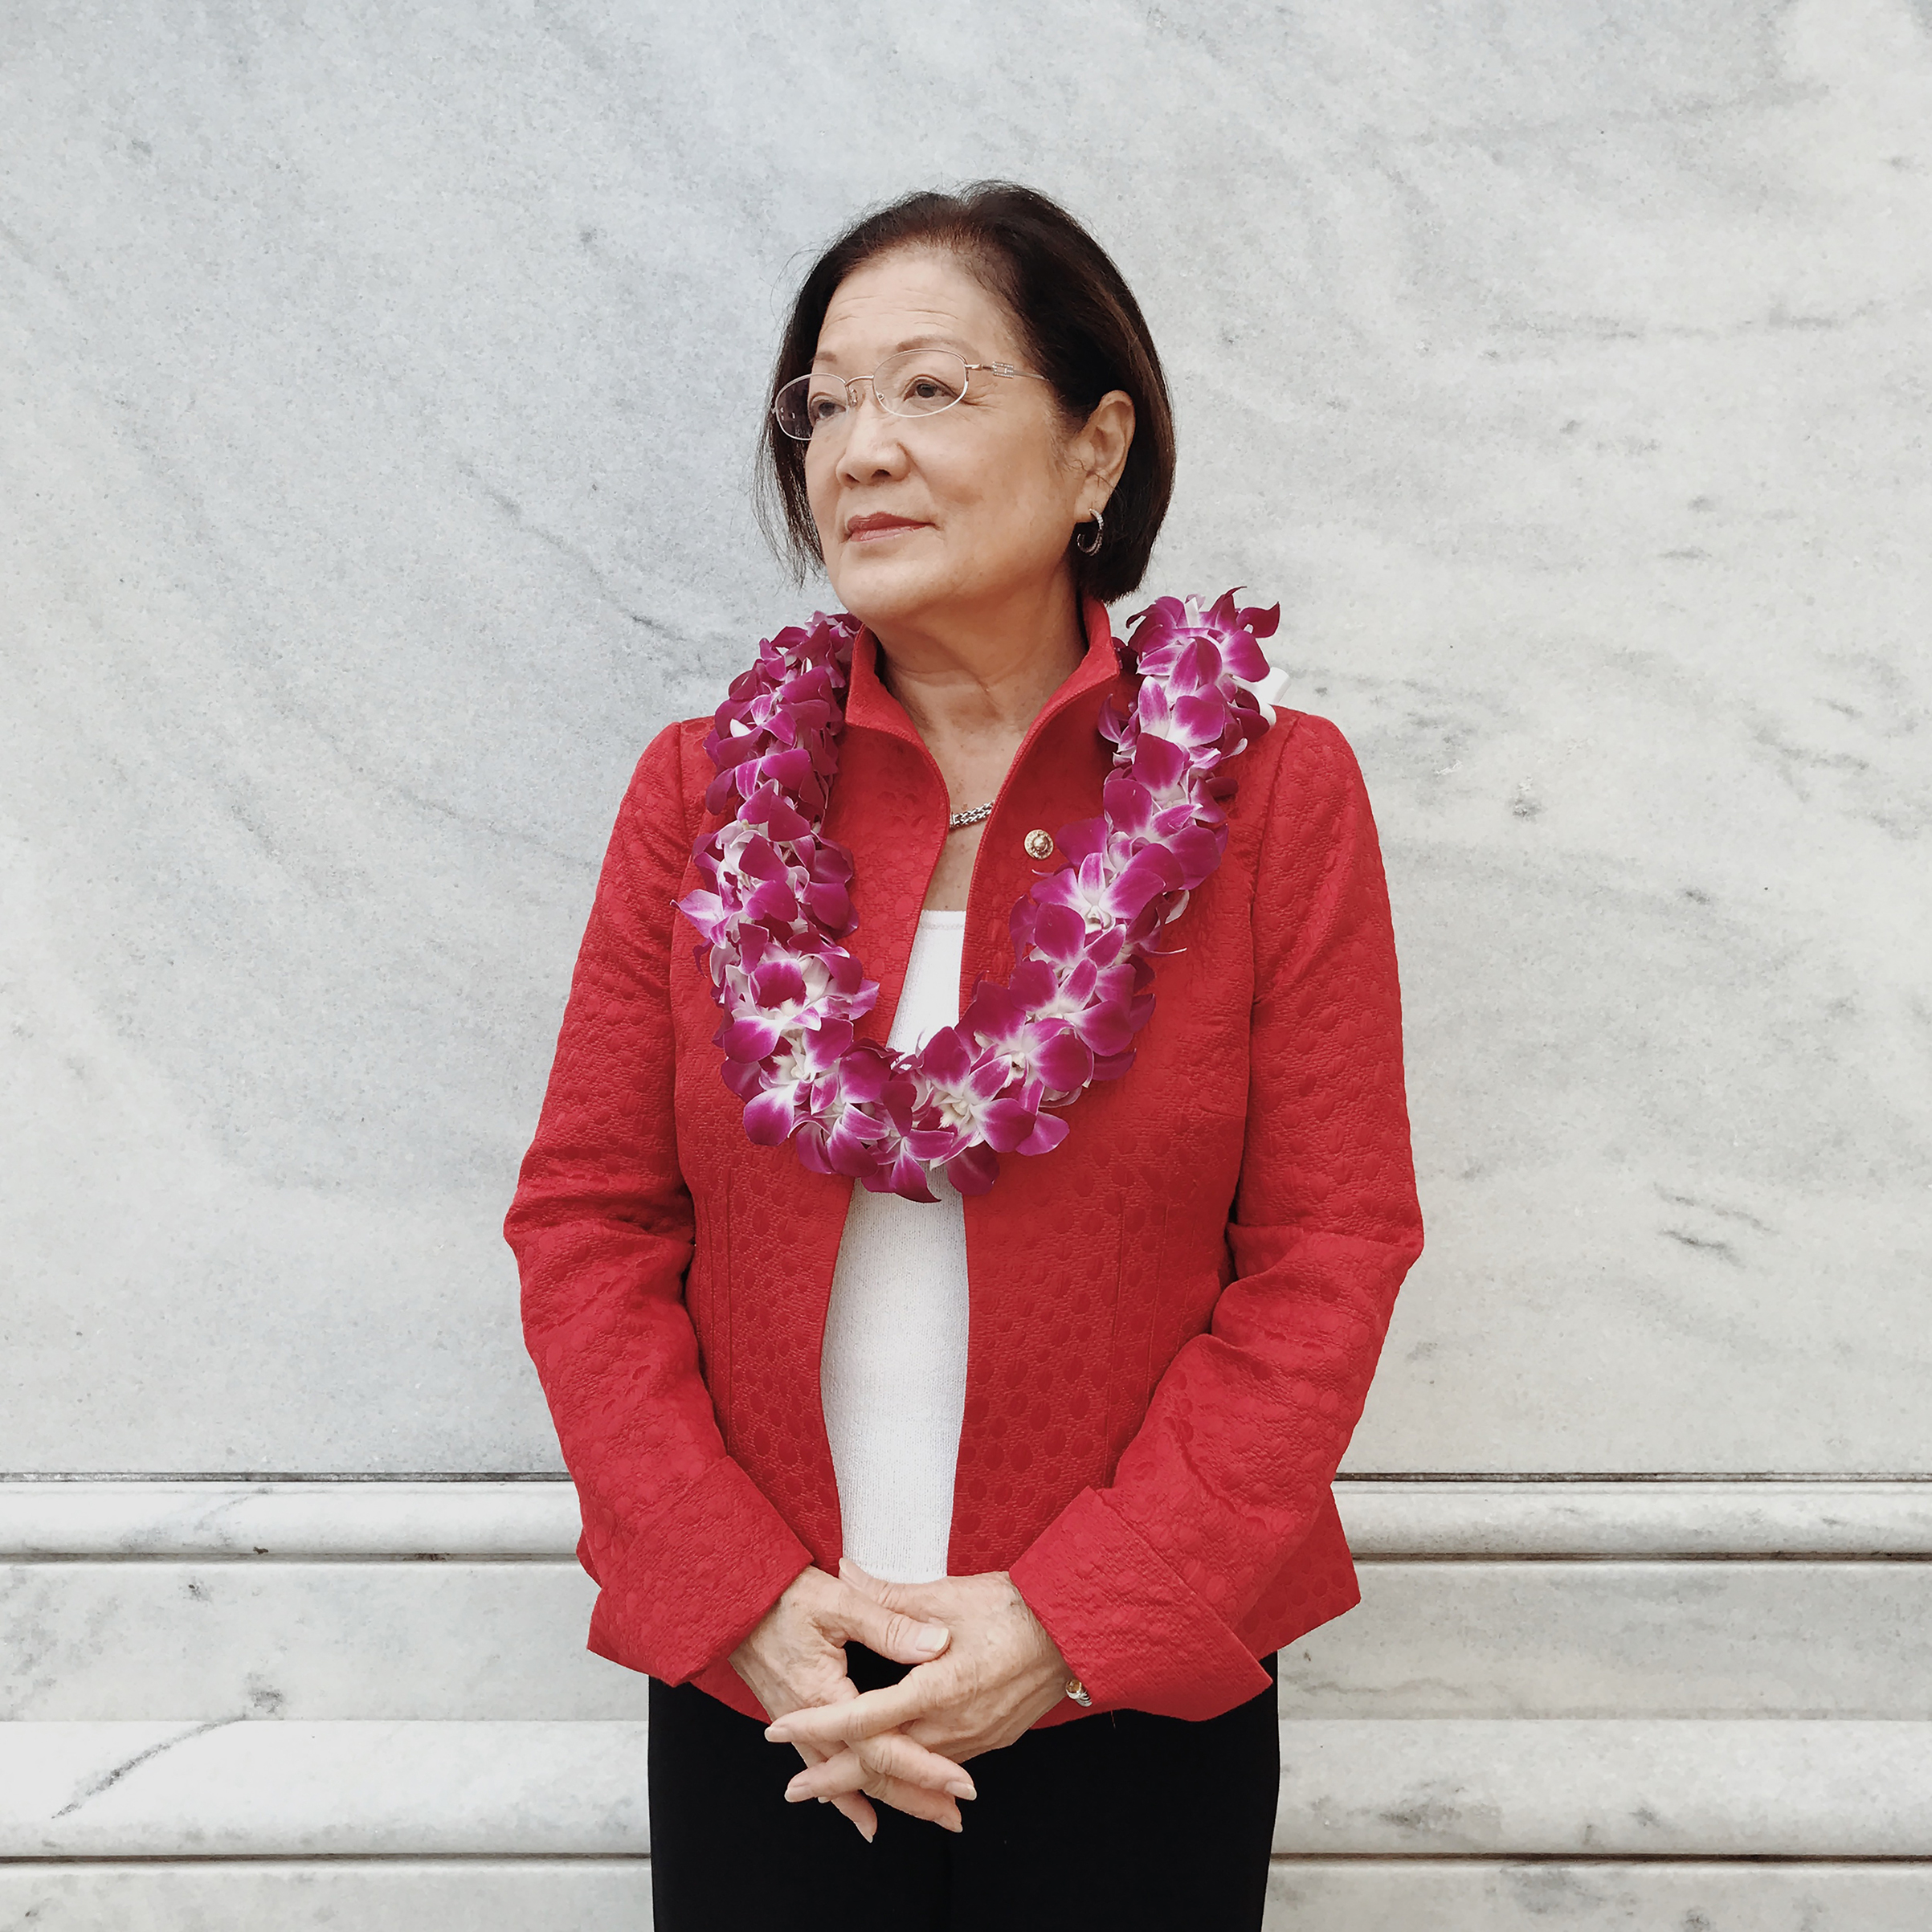 mazie-hirono-hawaii-senator-immigrant-trump.jpg